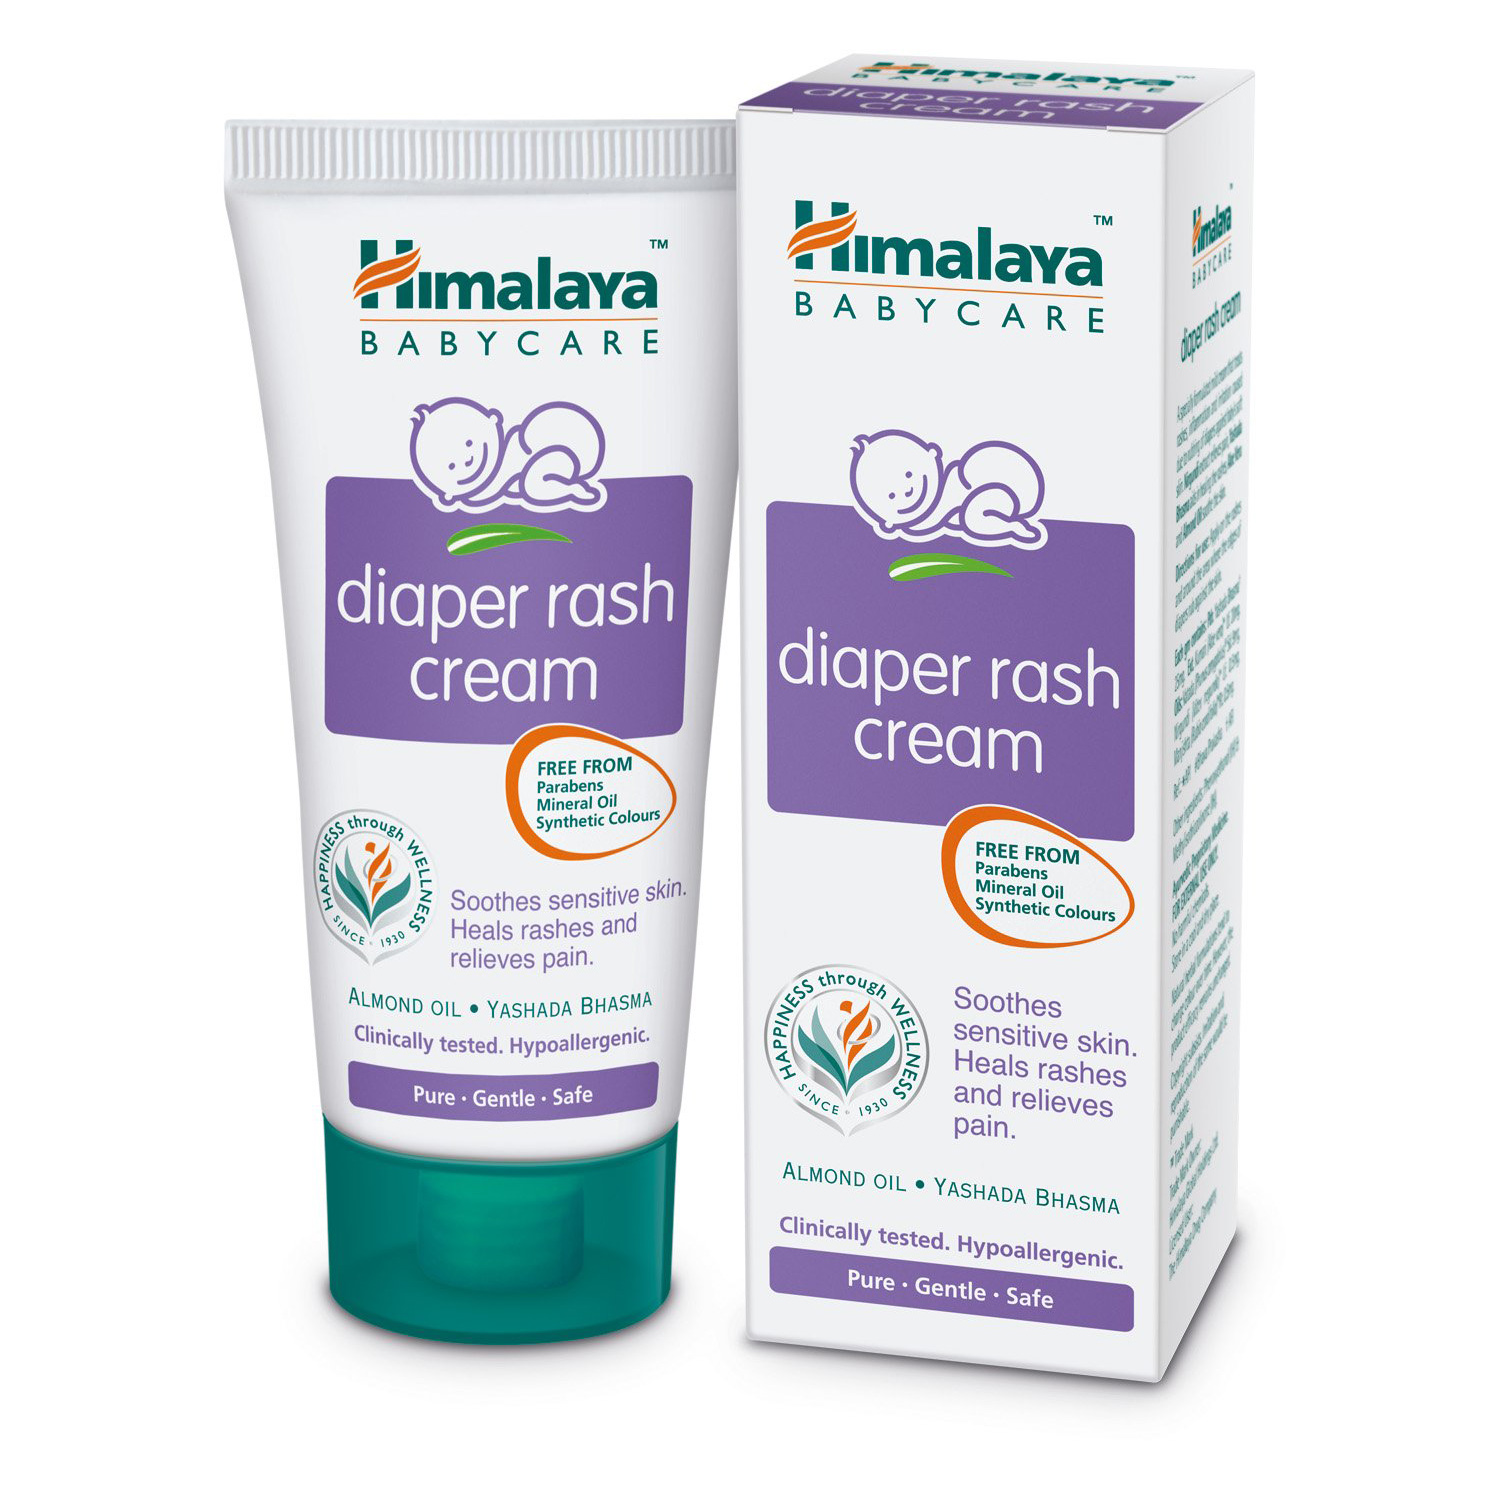 Himalaya Baby Care Diaper Rash Cream, 50g